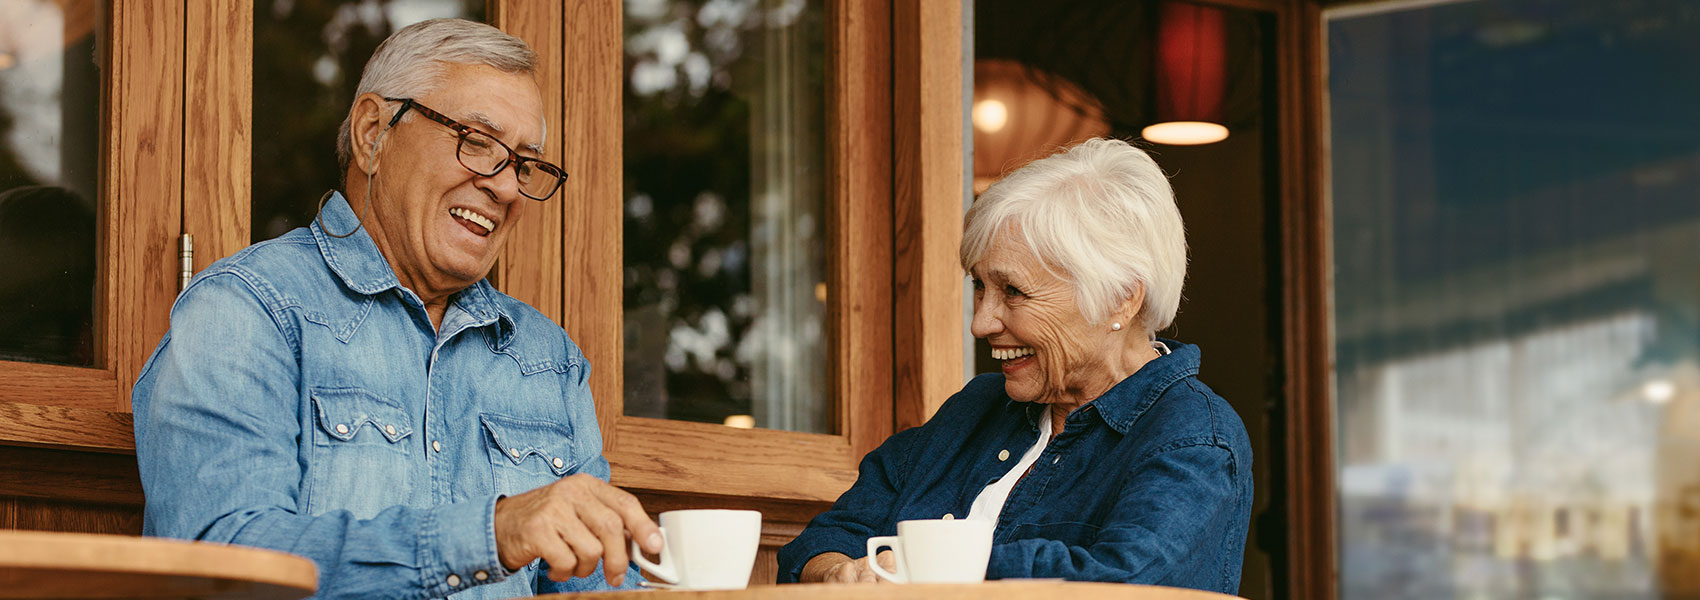 An elderly couple chatting and laughing while drinking coffee